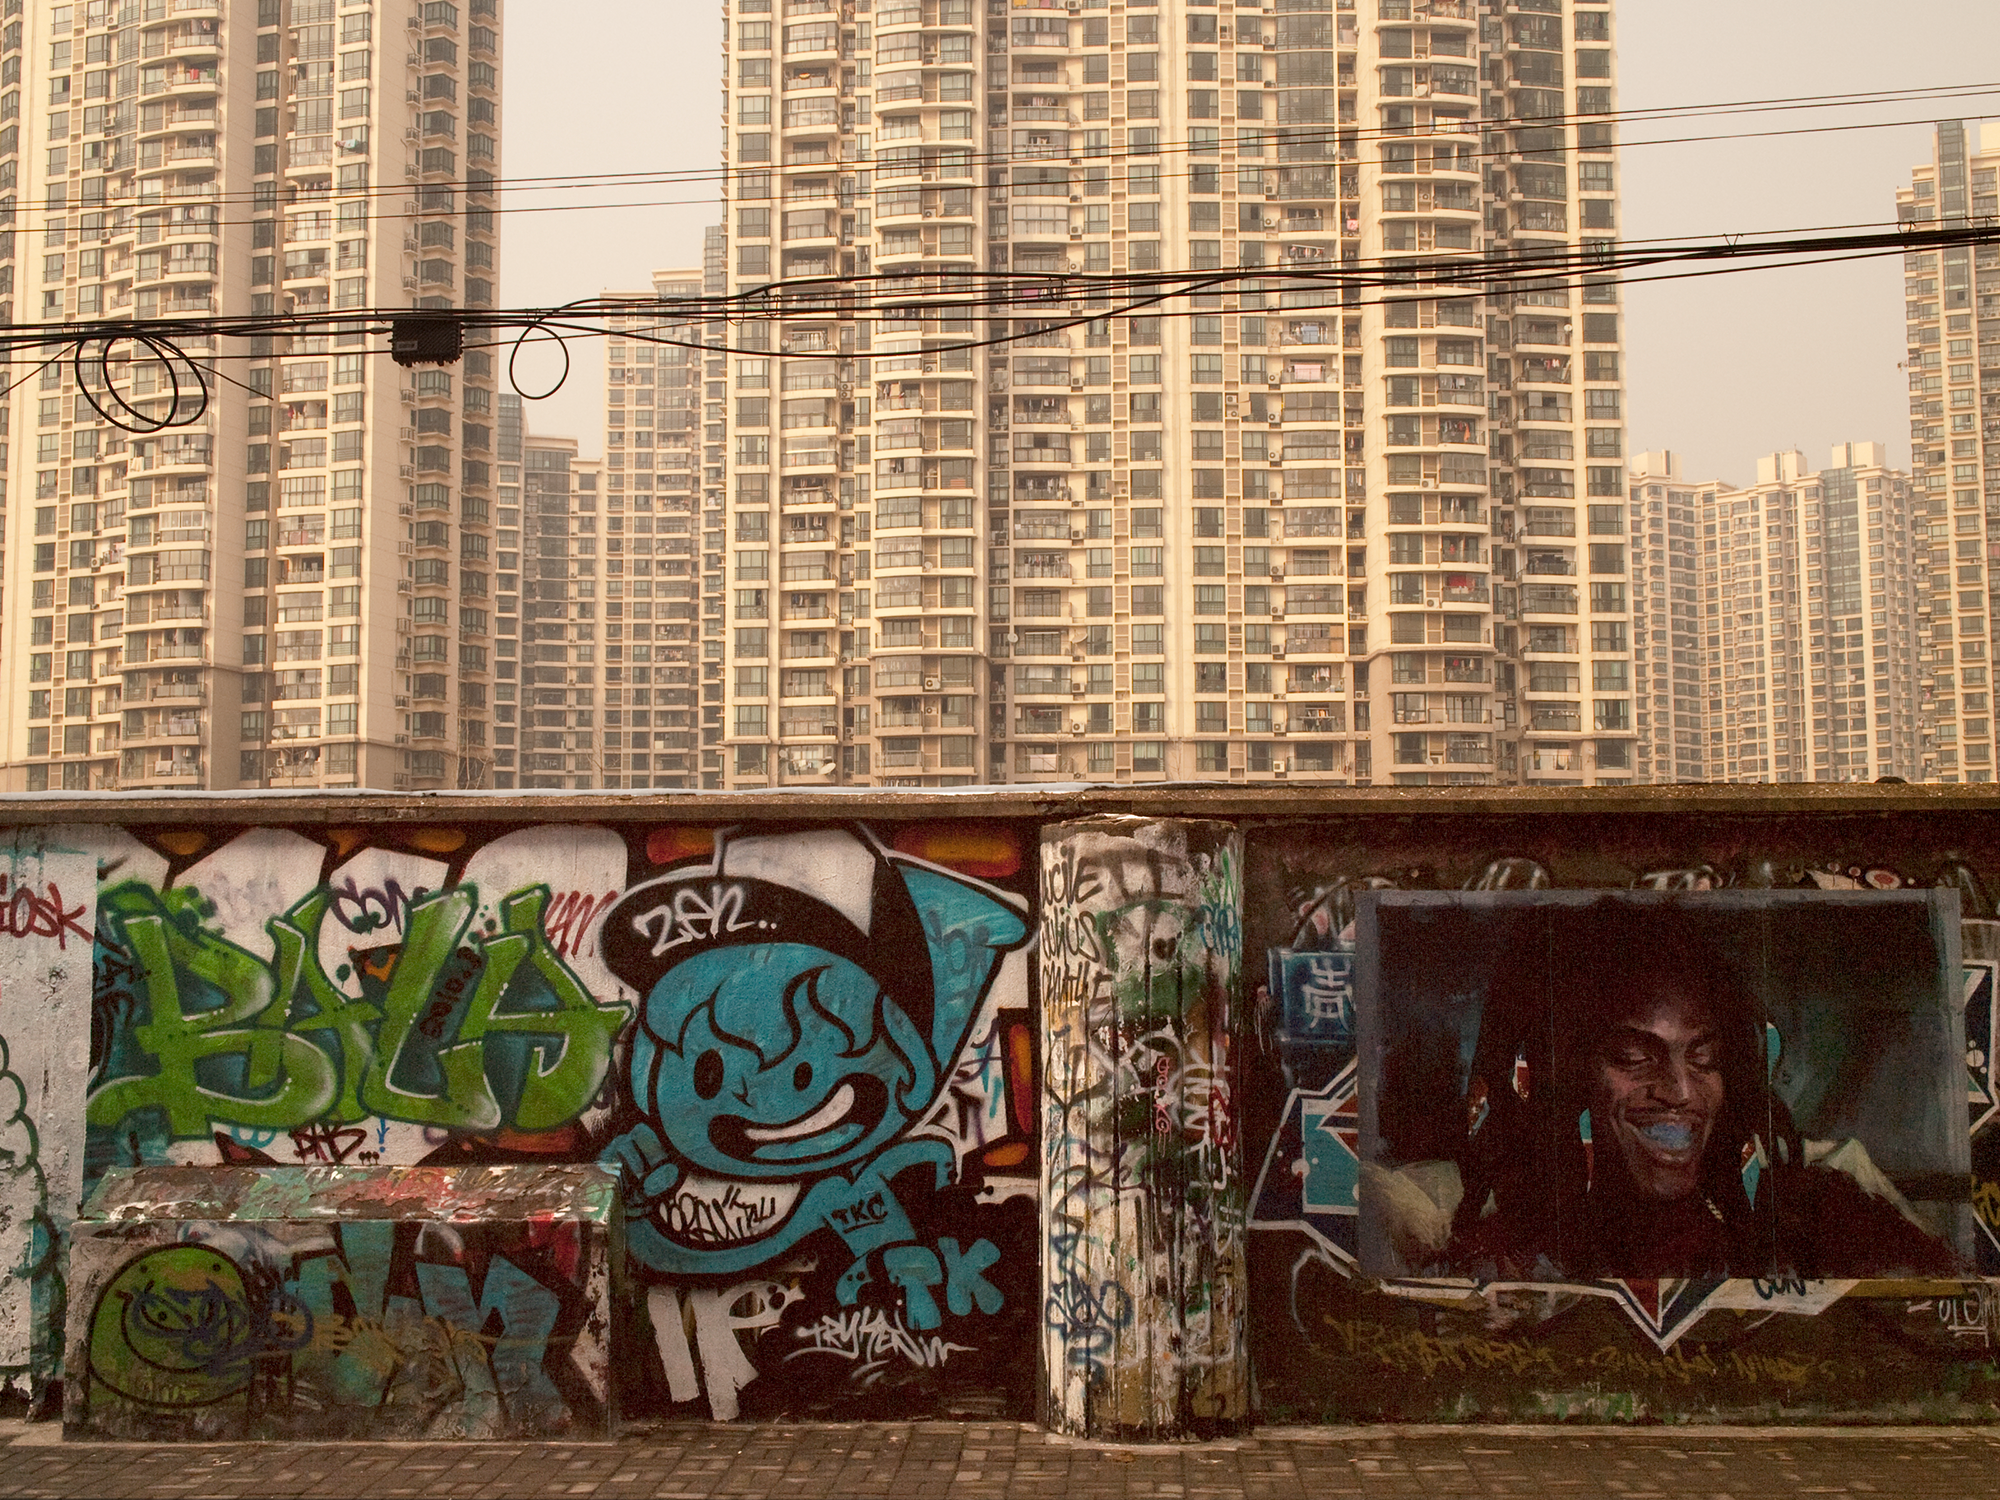 Shanghai Graffiti, Moganshan Road by vanfoto